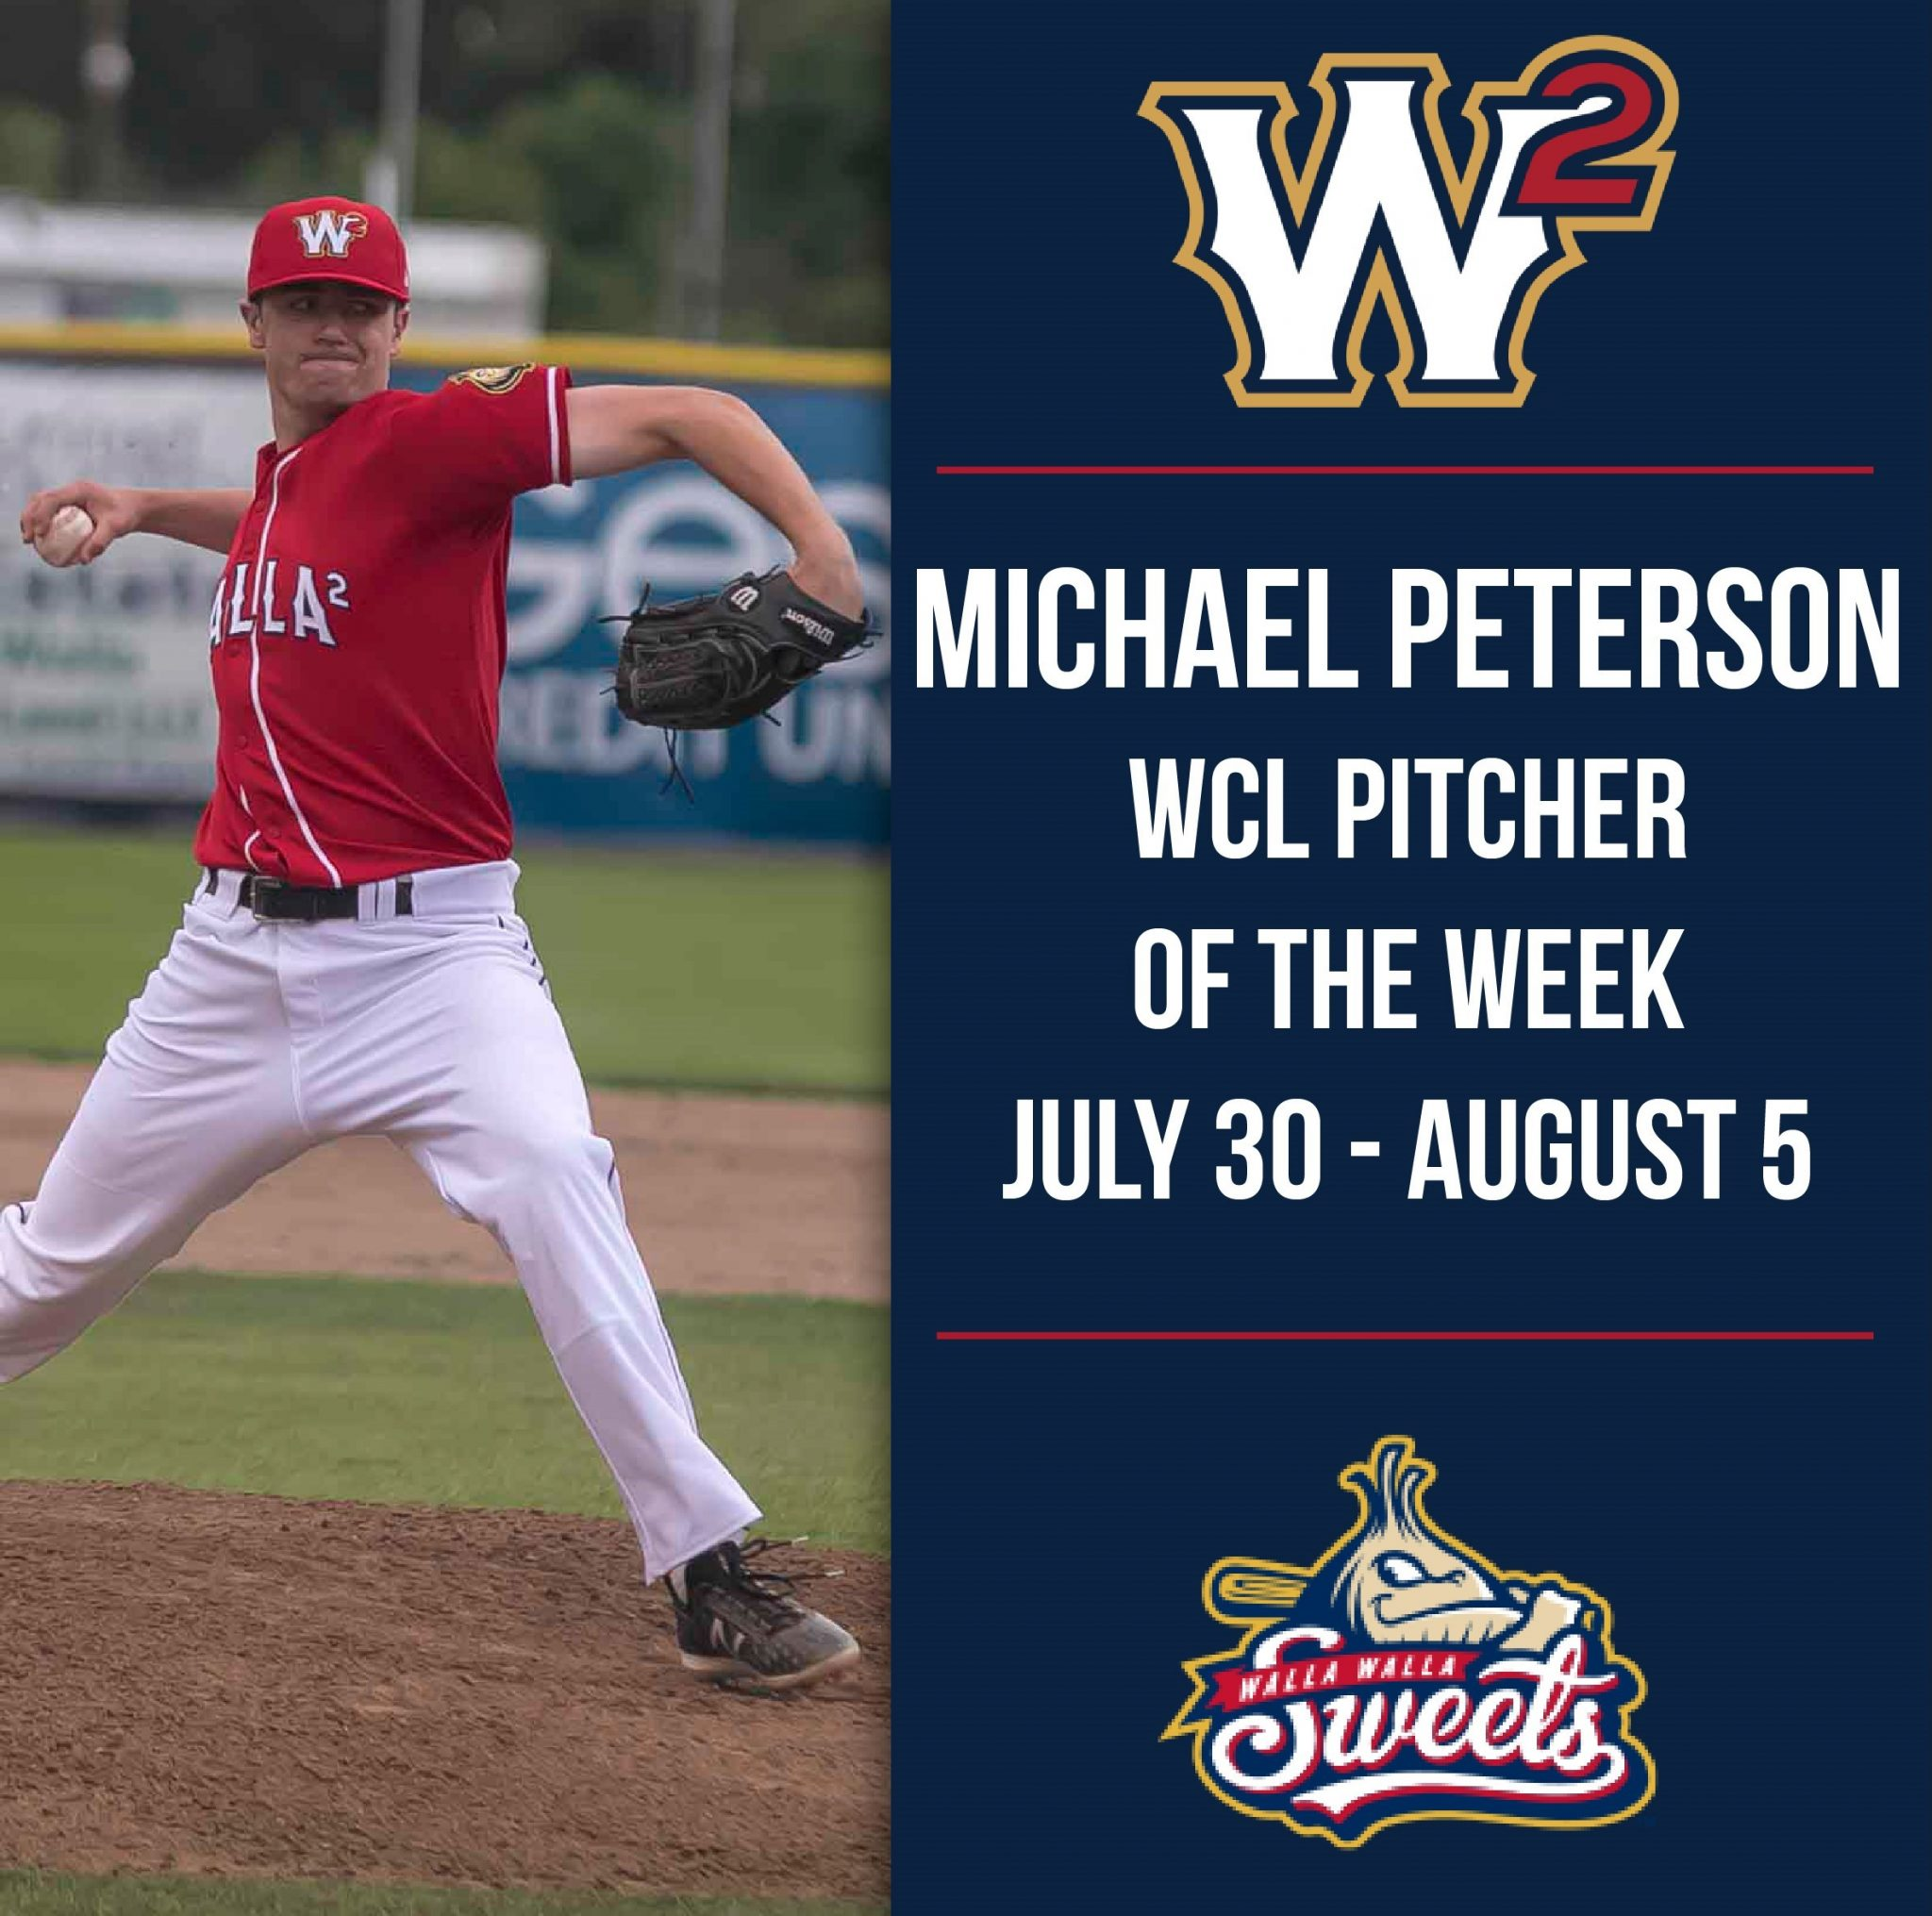 73fe5ddef30 Michael Peterson Named WCL Pitcher of the Week for July 3.